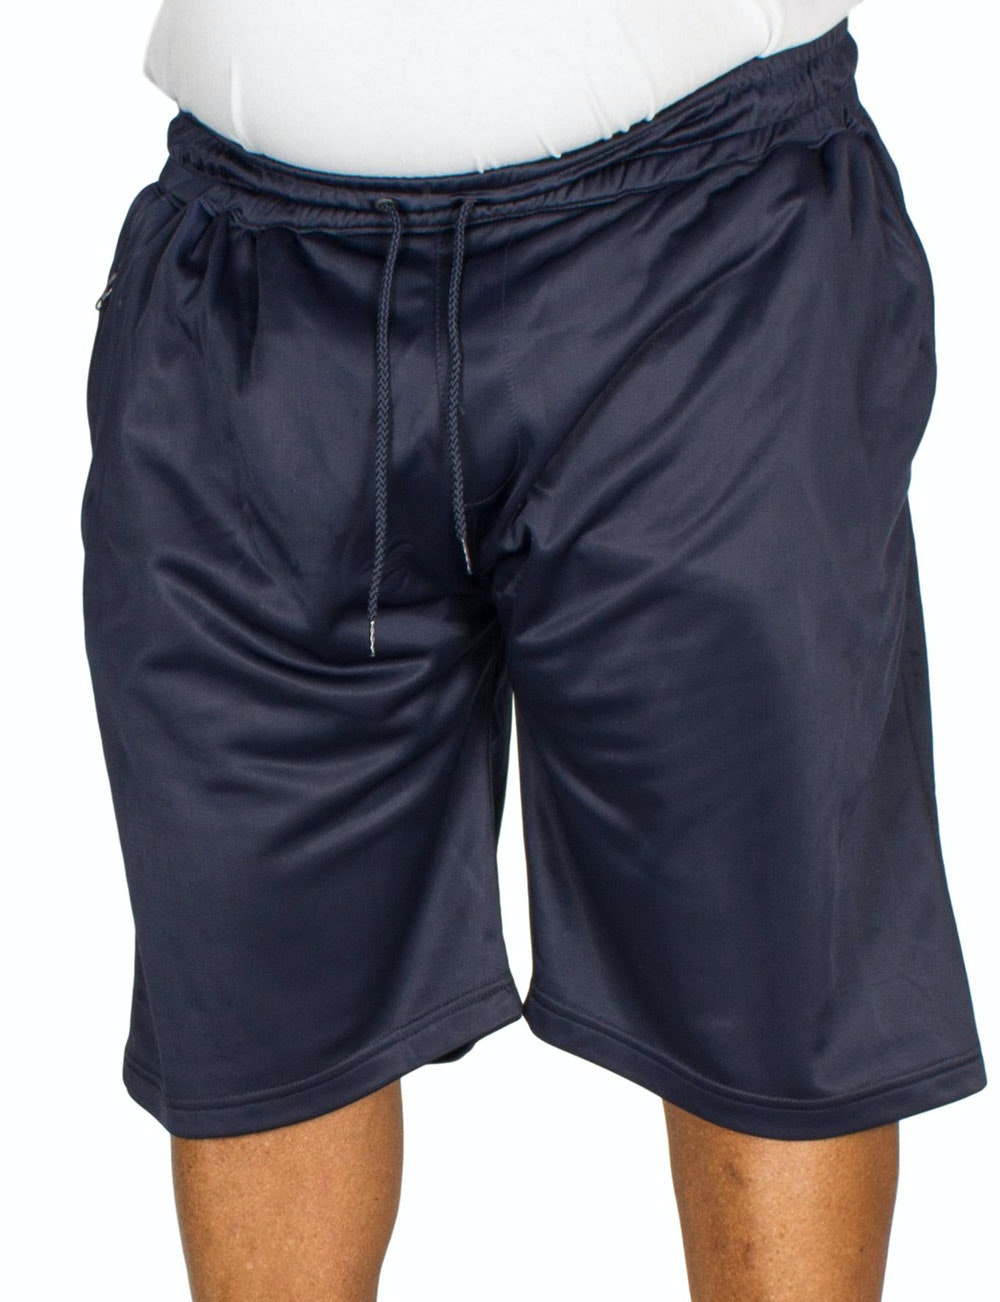 KAM Tricot Shorts Navy